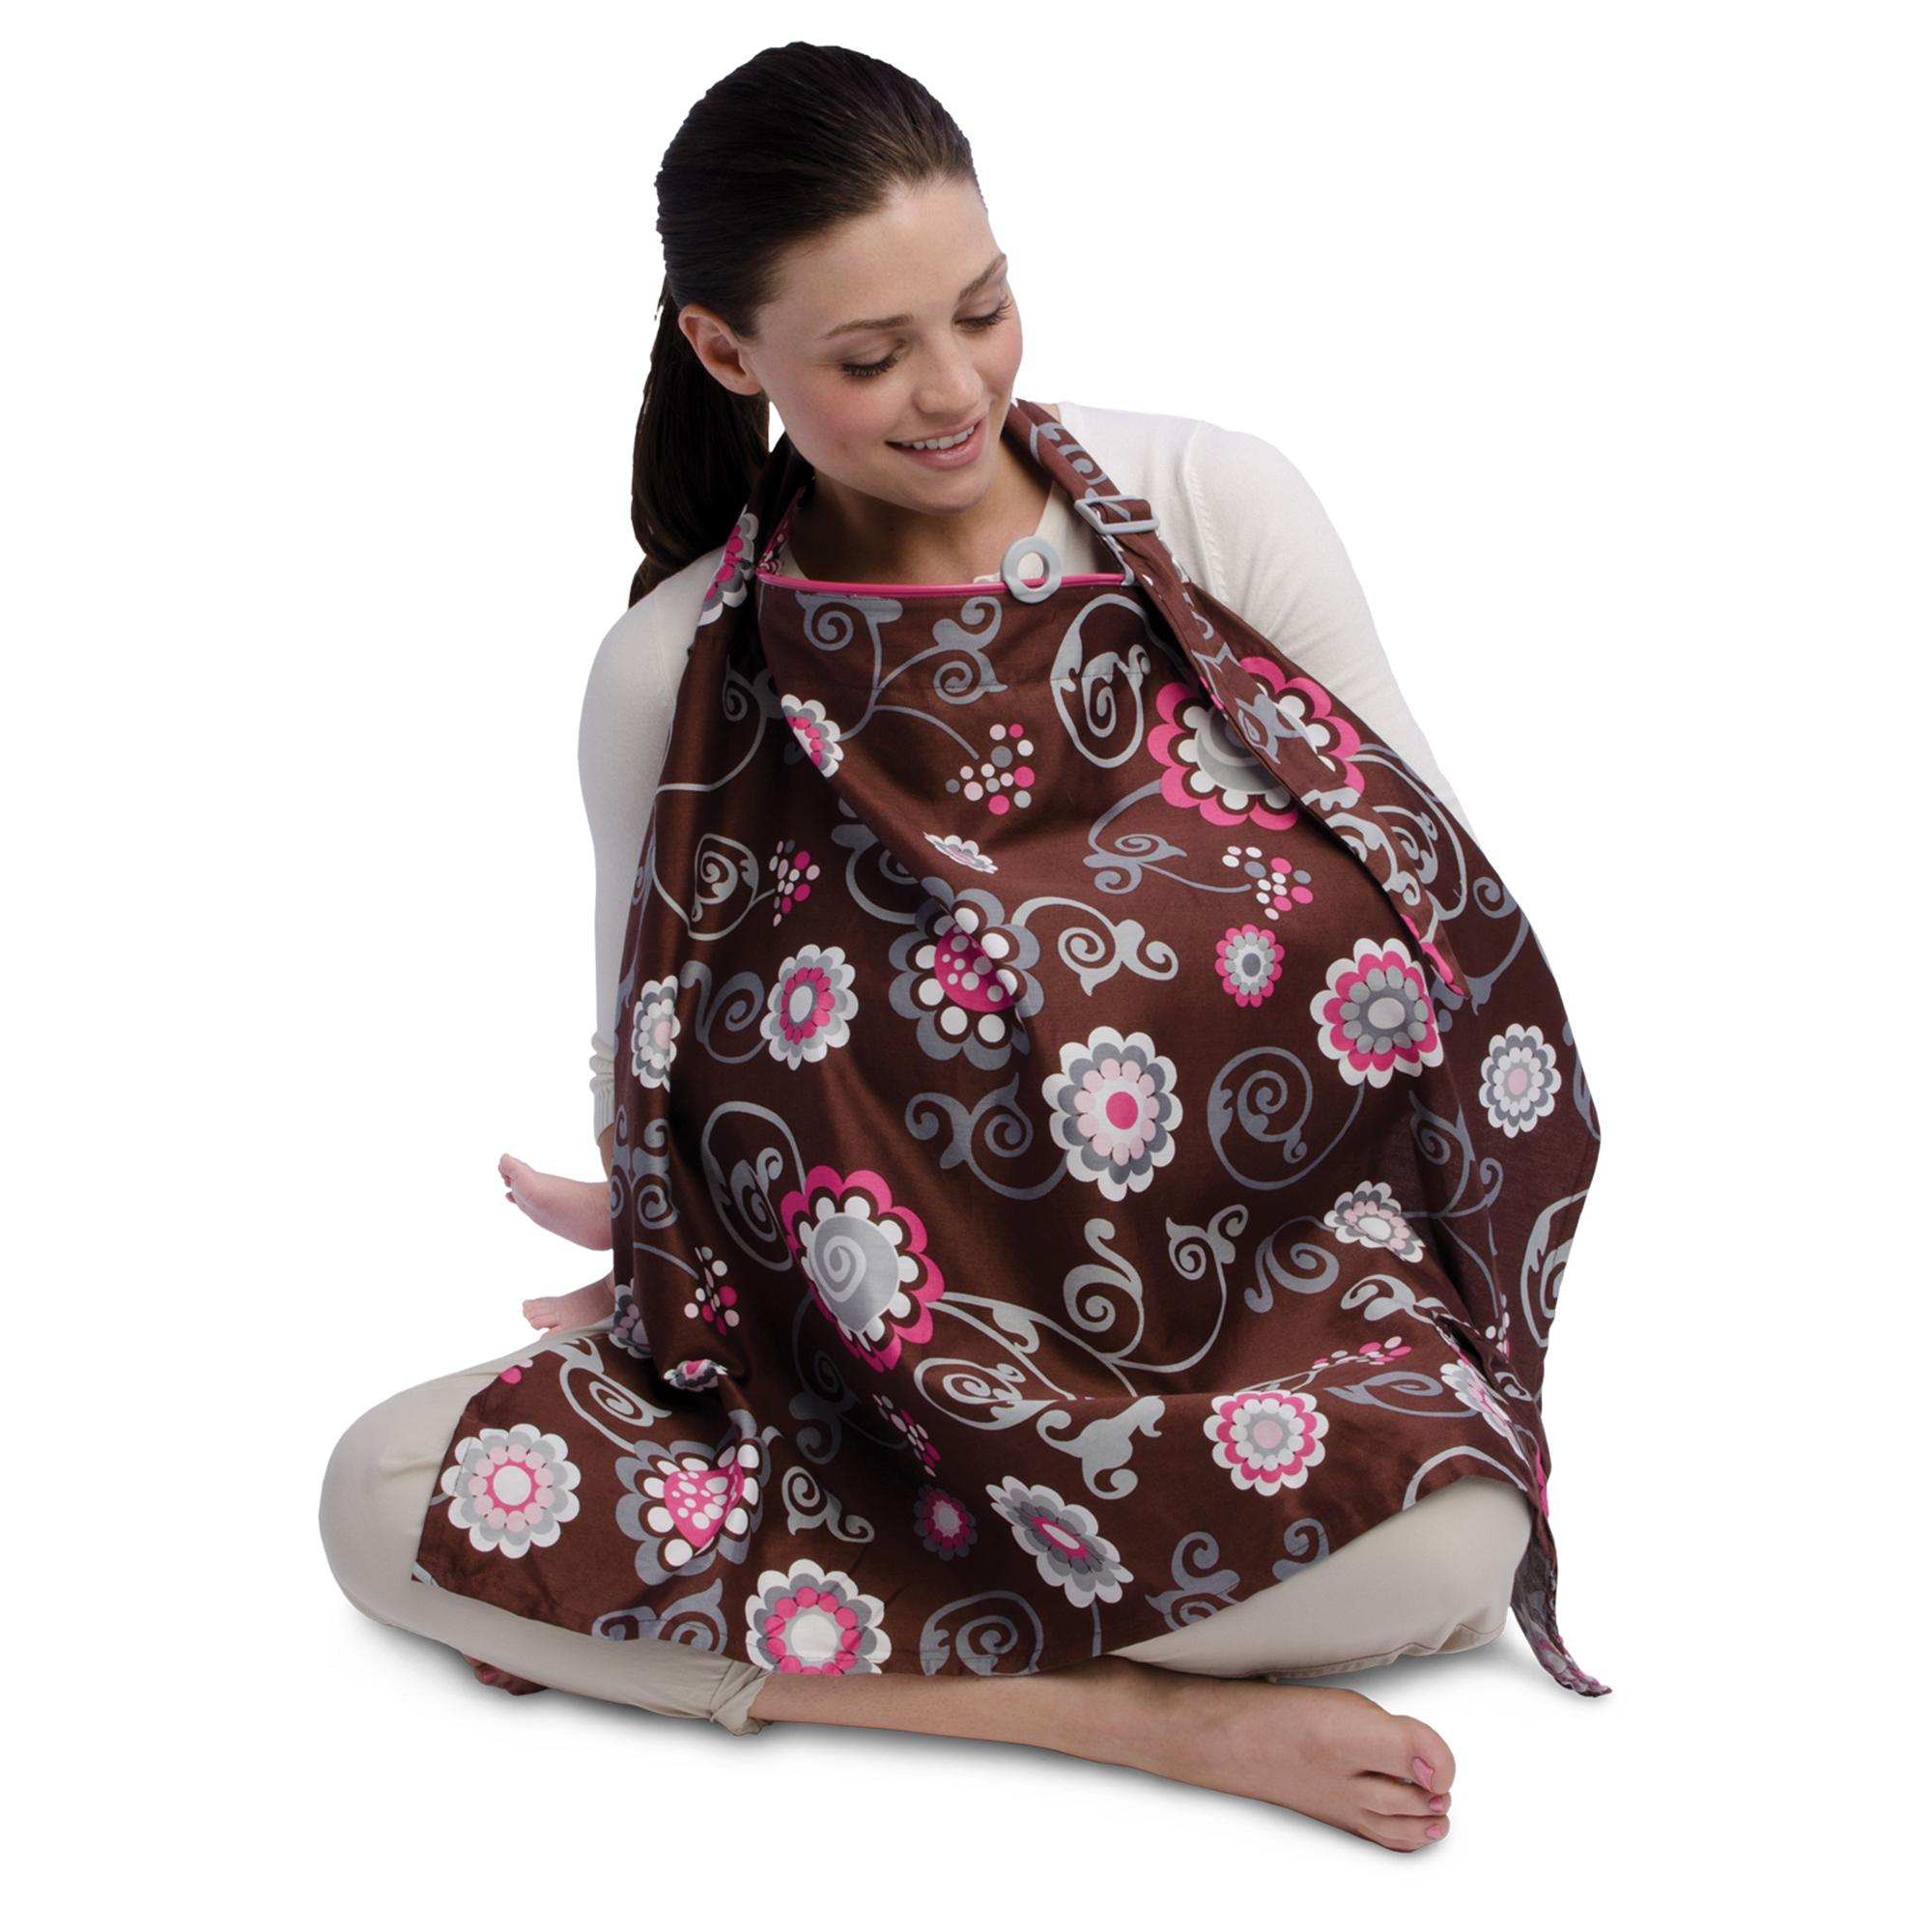 amazon com boppy nursing cover olivia floral discontinued by view larger